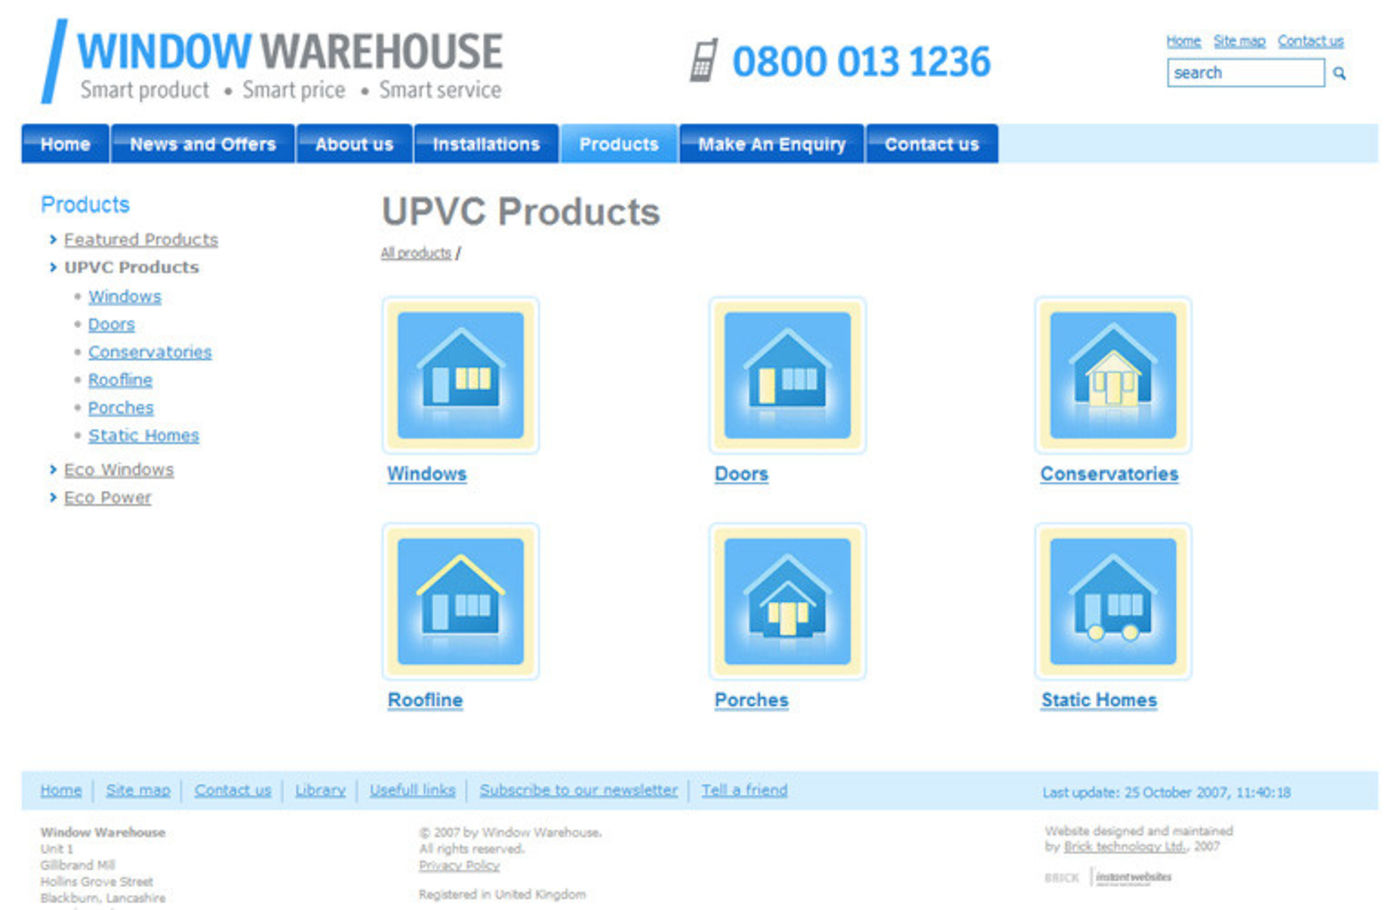 Window Warehouse UPVC Products